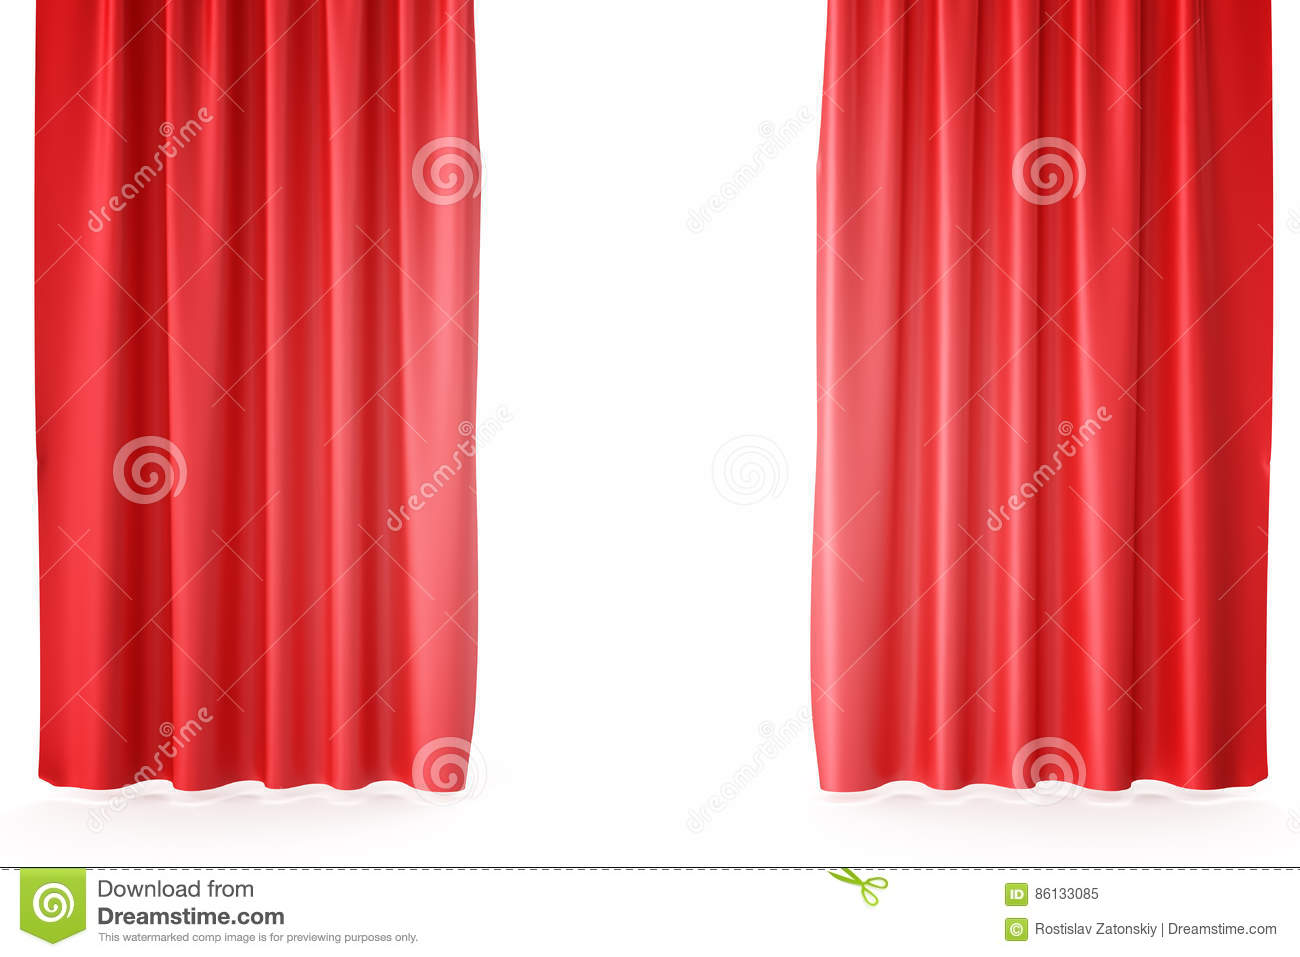 velvet red theatre curtain theater curtains stage classical stock drapery photo depositphotos scarlet silk